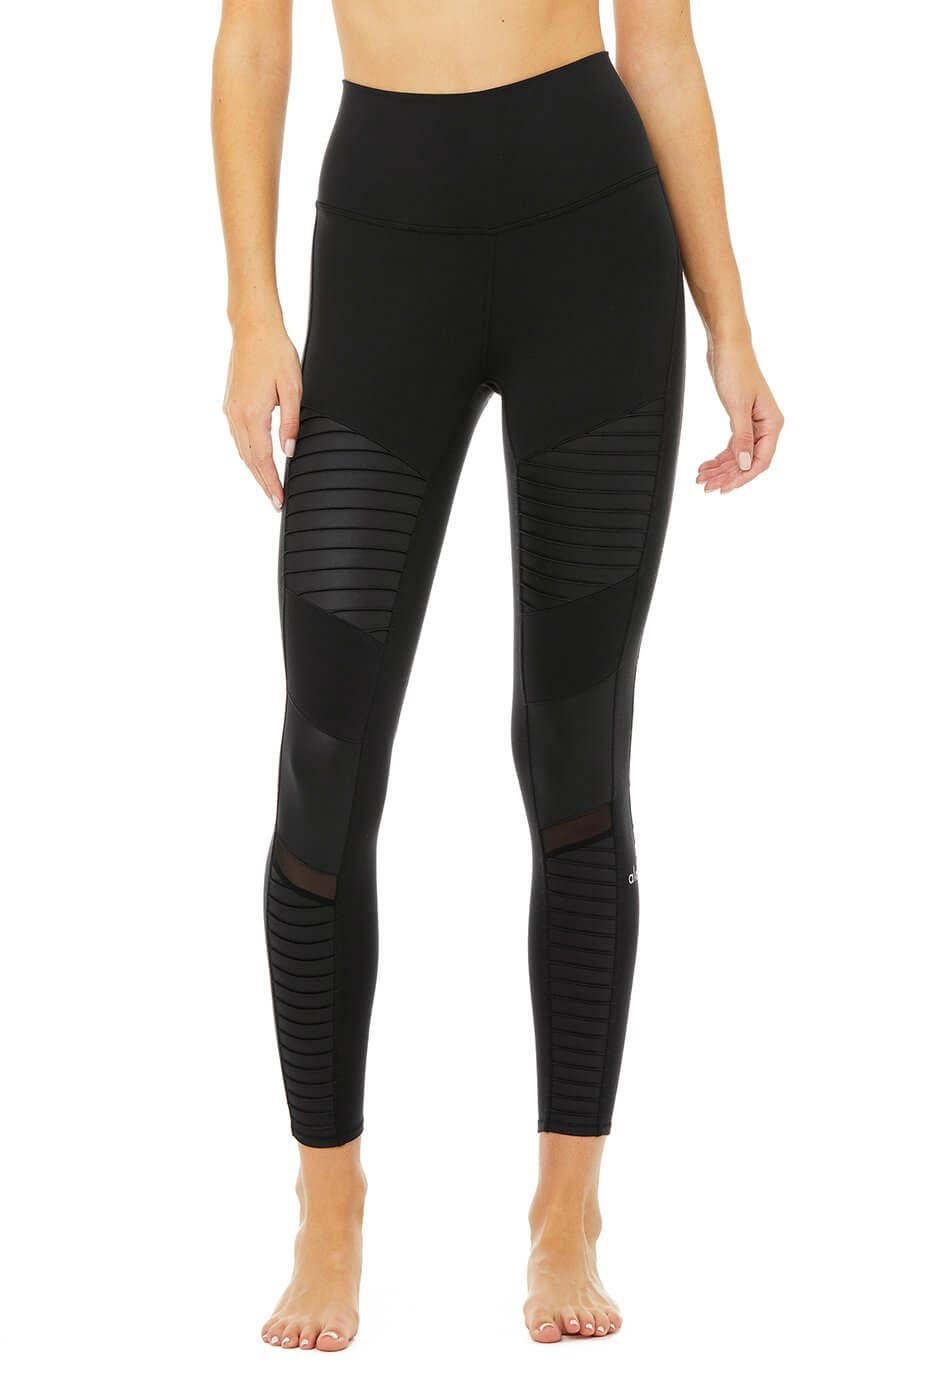 Alo Yoga - â…ž High Waist Moto Legging